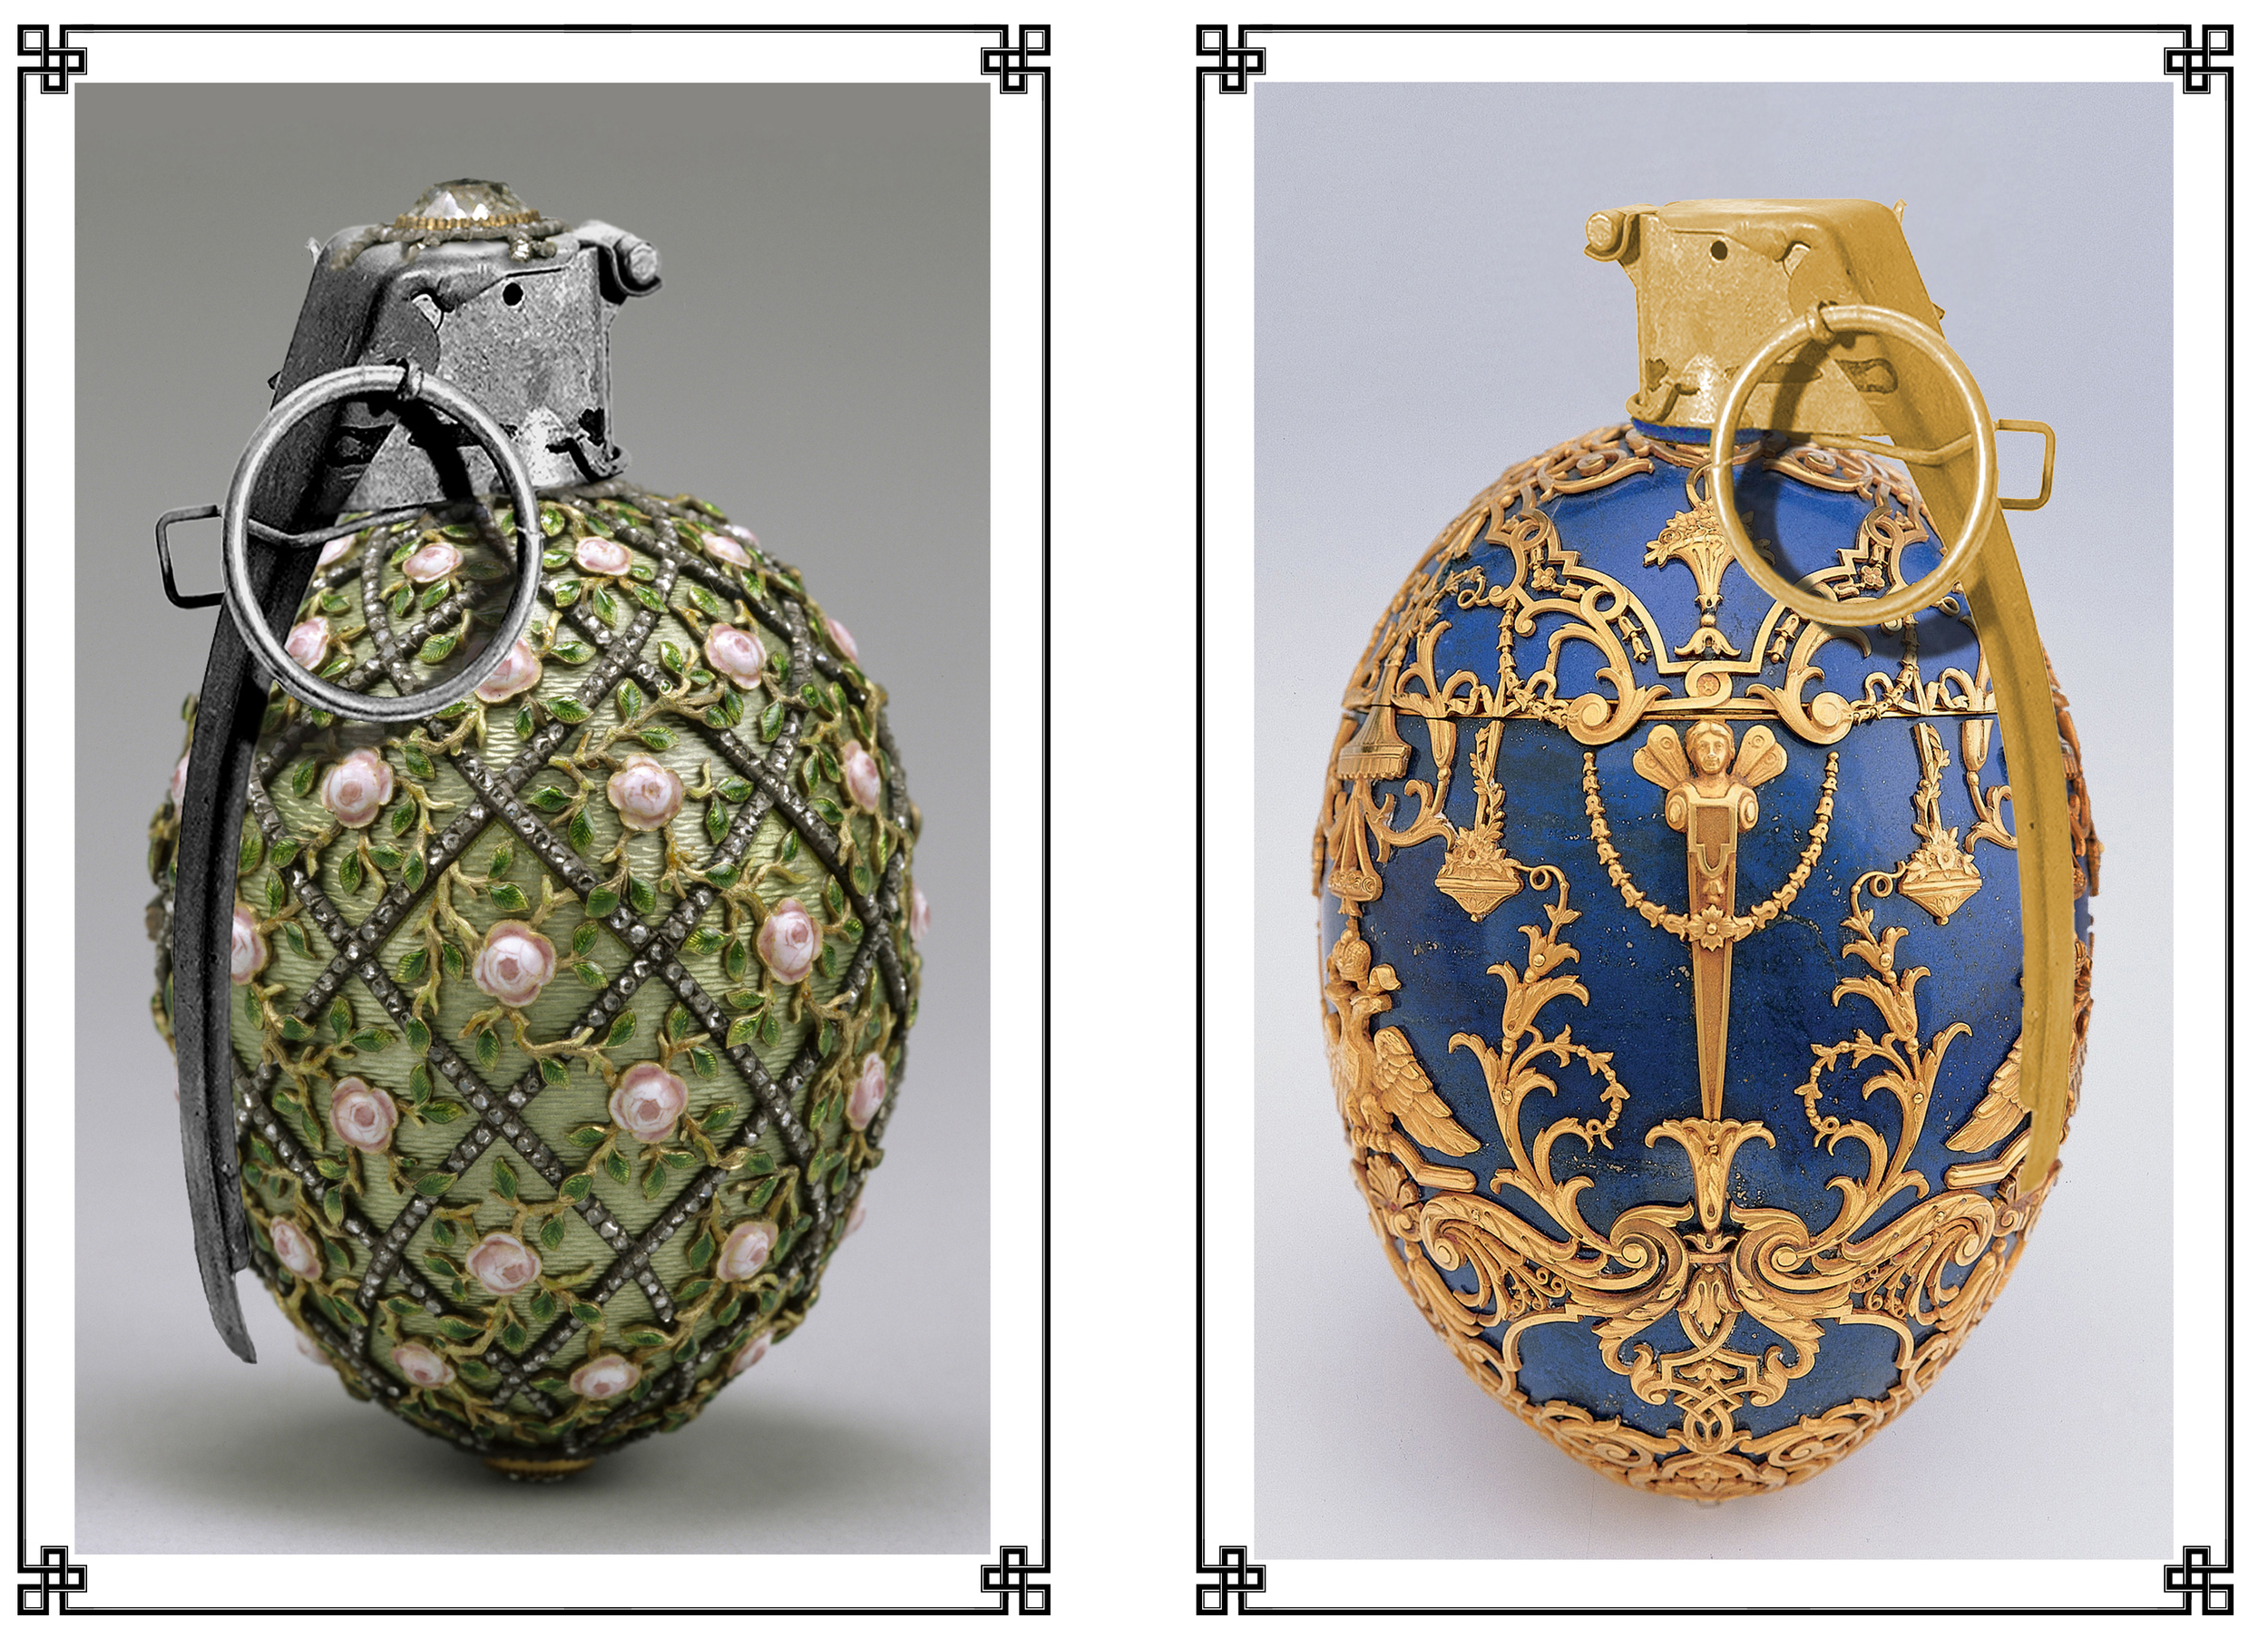 Working by special appointment, the House of Fabergé supplied a variety of ordinance for the Tsar's personal elite Lieb-Gvardia {Life-Guards} regiments. These hand grenades, while commonly lethal, also ensured a generous pension for anybody who survived an encounter with them in combat, provided said survivor retained sufficient presence of mind to request any extracted shrapnel from the attending surgeons. This no doubt accounts to no small extent for the zeal with which revolutionary fighters laid siege to Romanoff palaces during the uprisings of the early 20th Century.